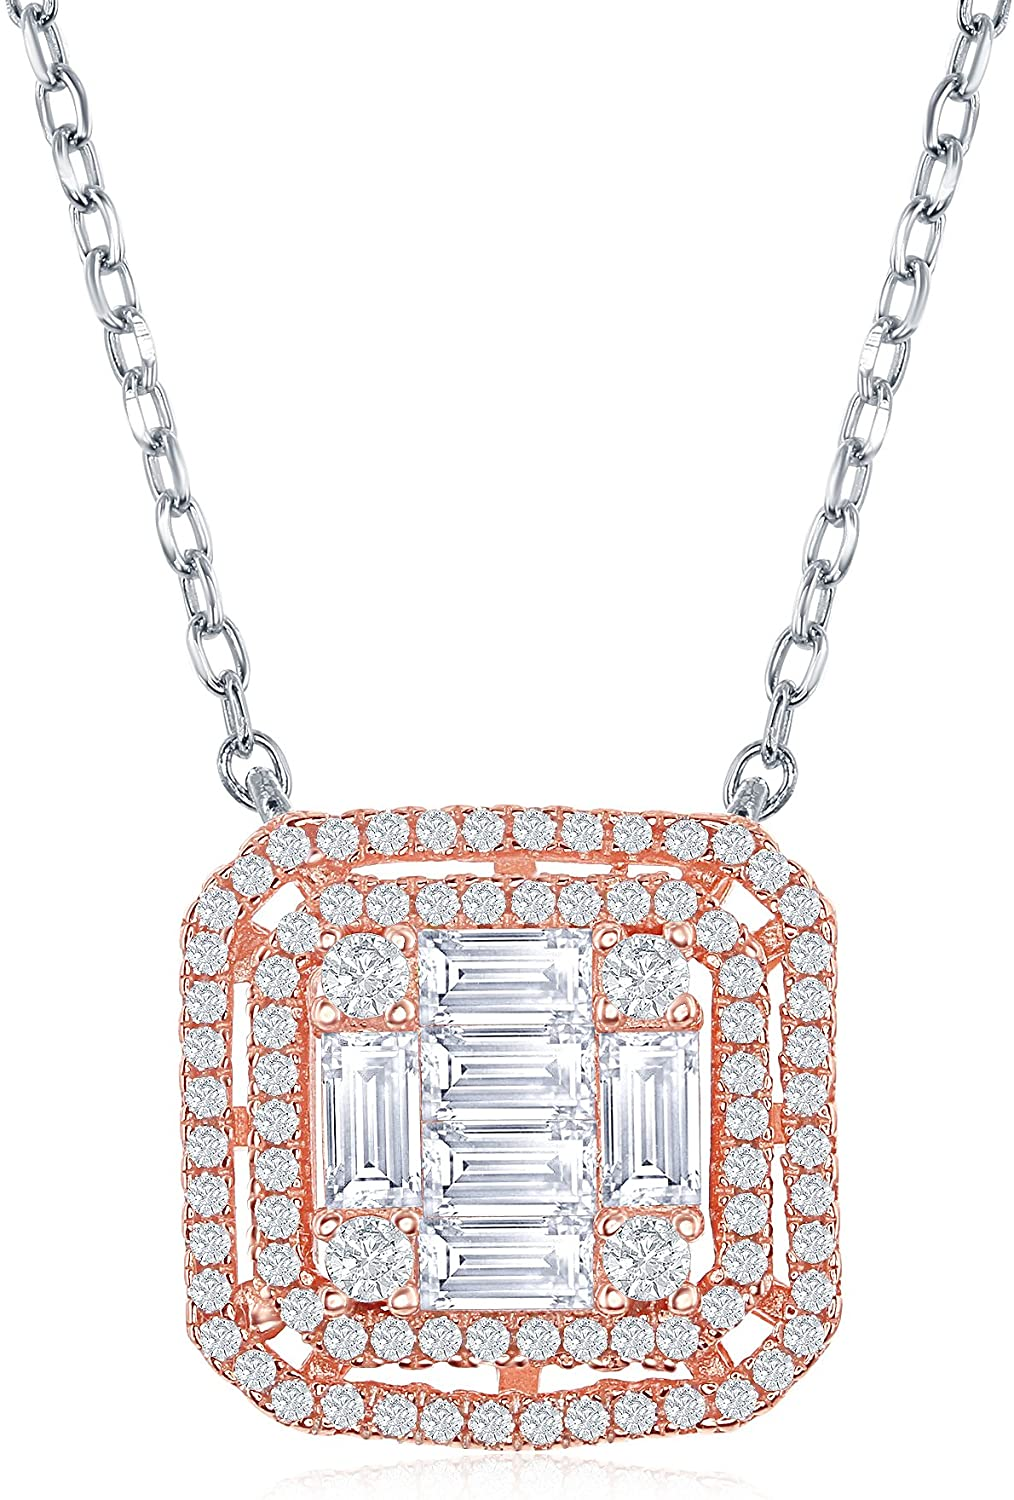 Sterling Silver and Rose Tone Baguette Micro Pave Cubic Zirconia Square 16+2 Necklace